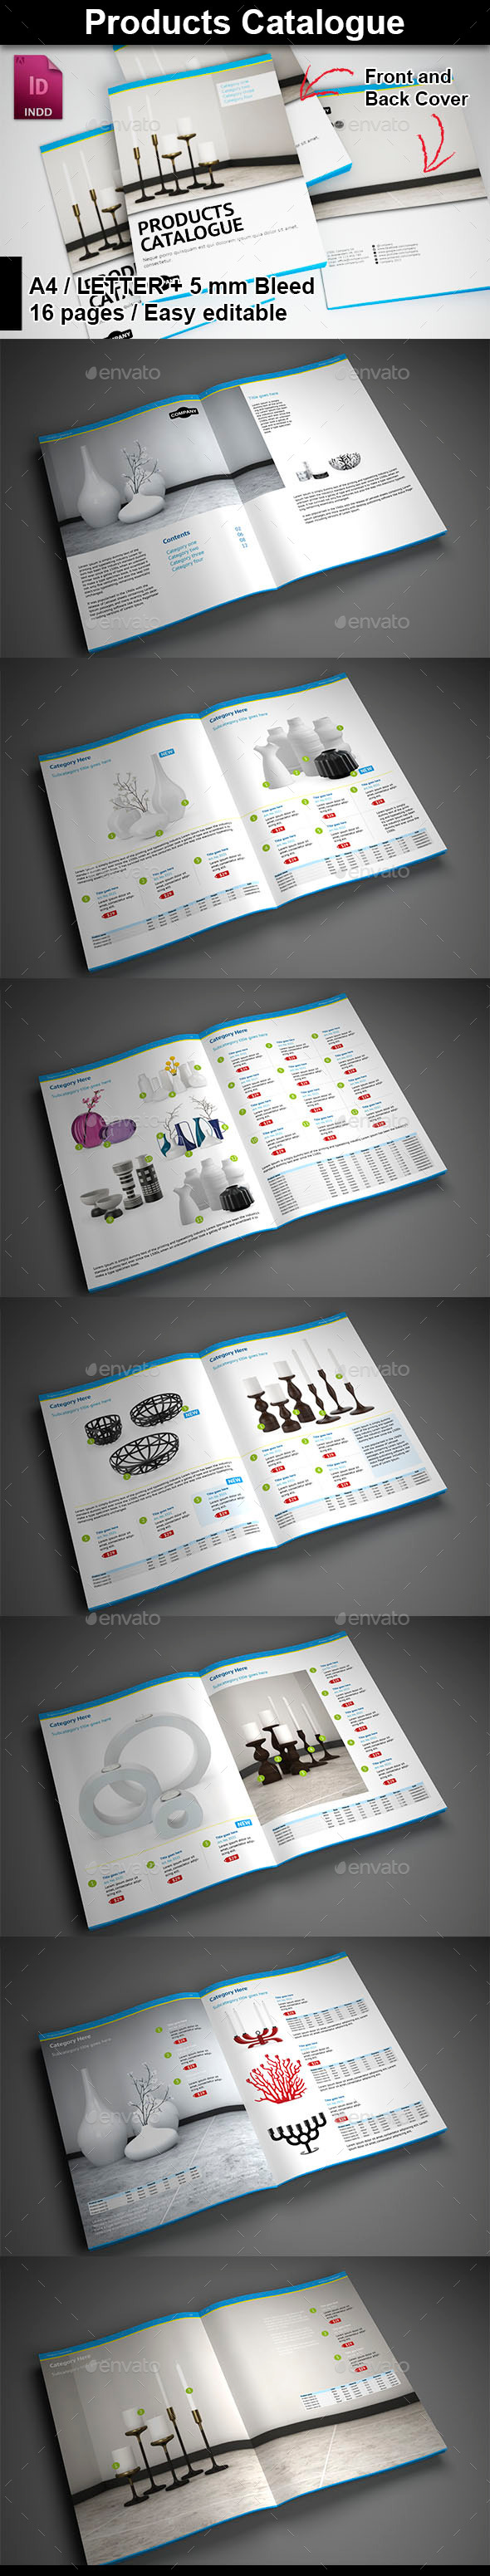 GraphicRiver Products Catalogue 9642400